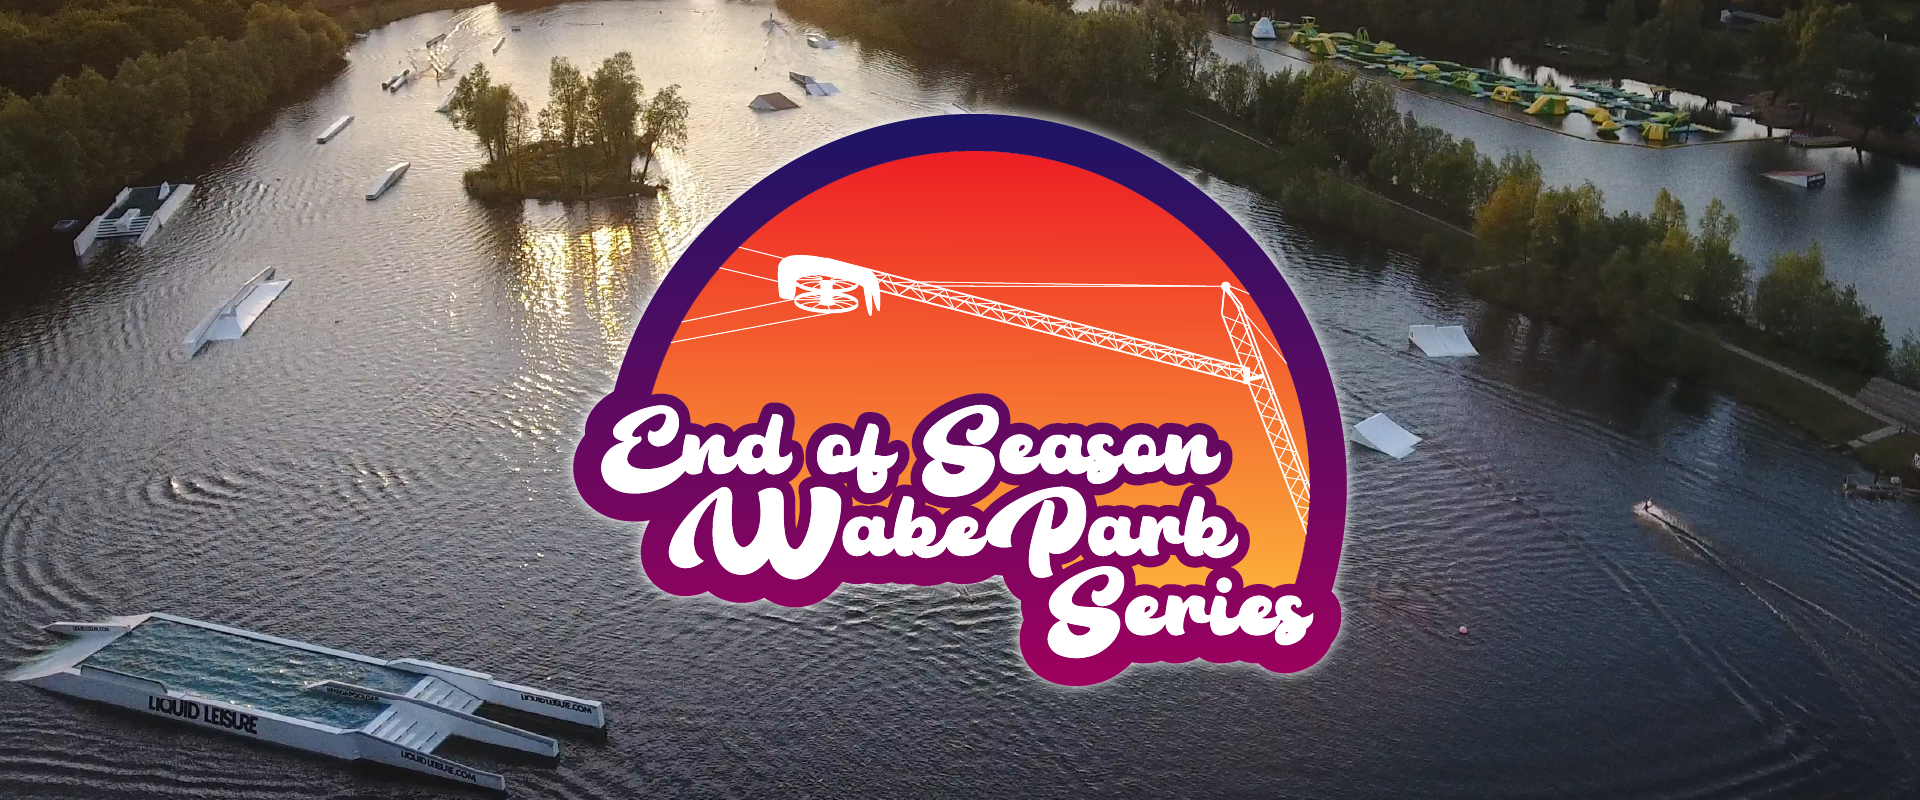 End of Season WakePark Series